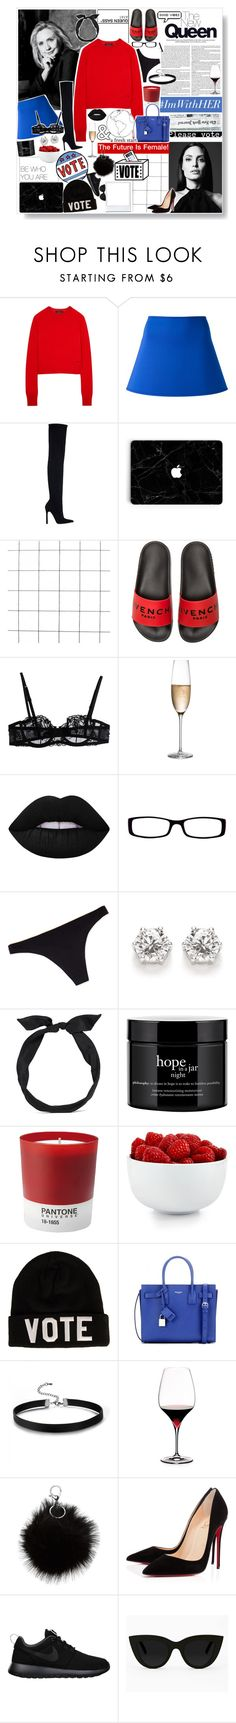 """""""VOTE BEFORE IT'S TOO LATE!"""" by sdesigner102 ❤ liked on Polyvore featuring Equipment, DKNY, Zara, Givenchy, La Perla, RogaÅ¡ka, Lime Crime, Chico's, Chantelle and yunotme"""